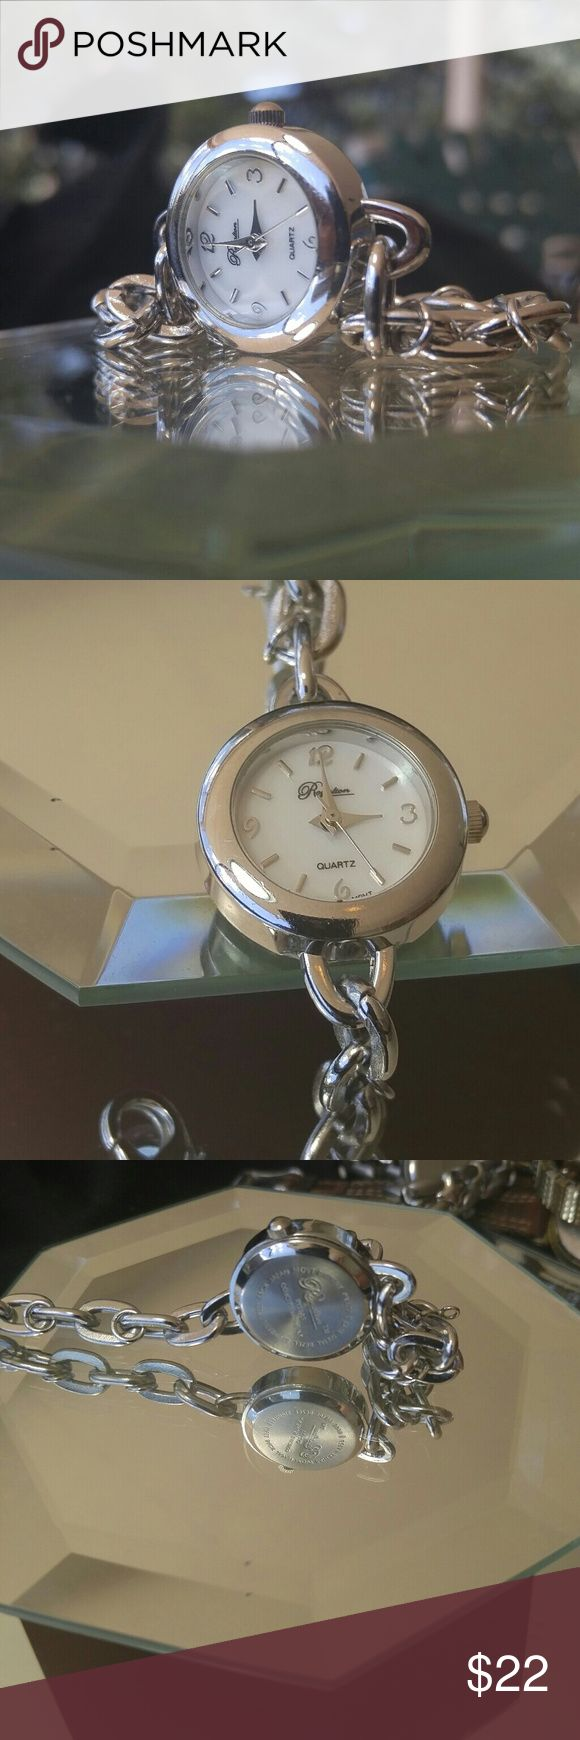 Ladies watch Ladies Silver and. White Raymond watch Chain band excellent shape like new.I've been through it, had it  adjusted. I put a new battery in it. Everything works perfectly ready to go. Accessories Watches